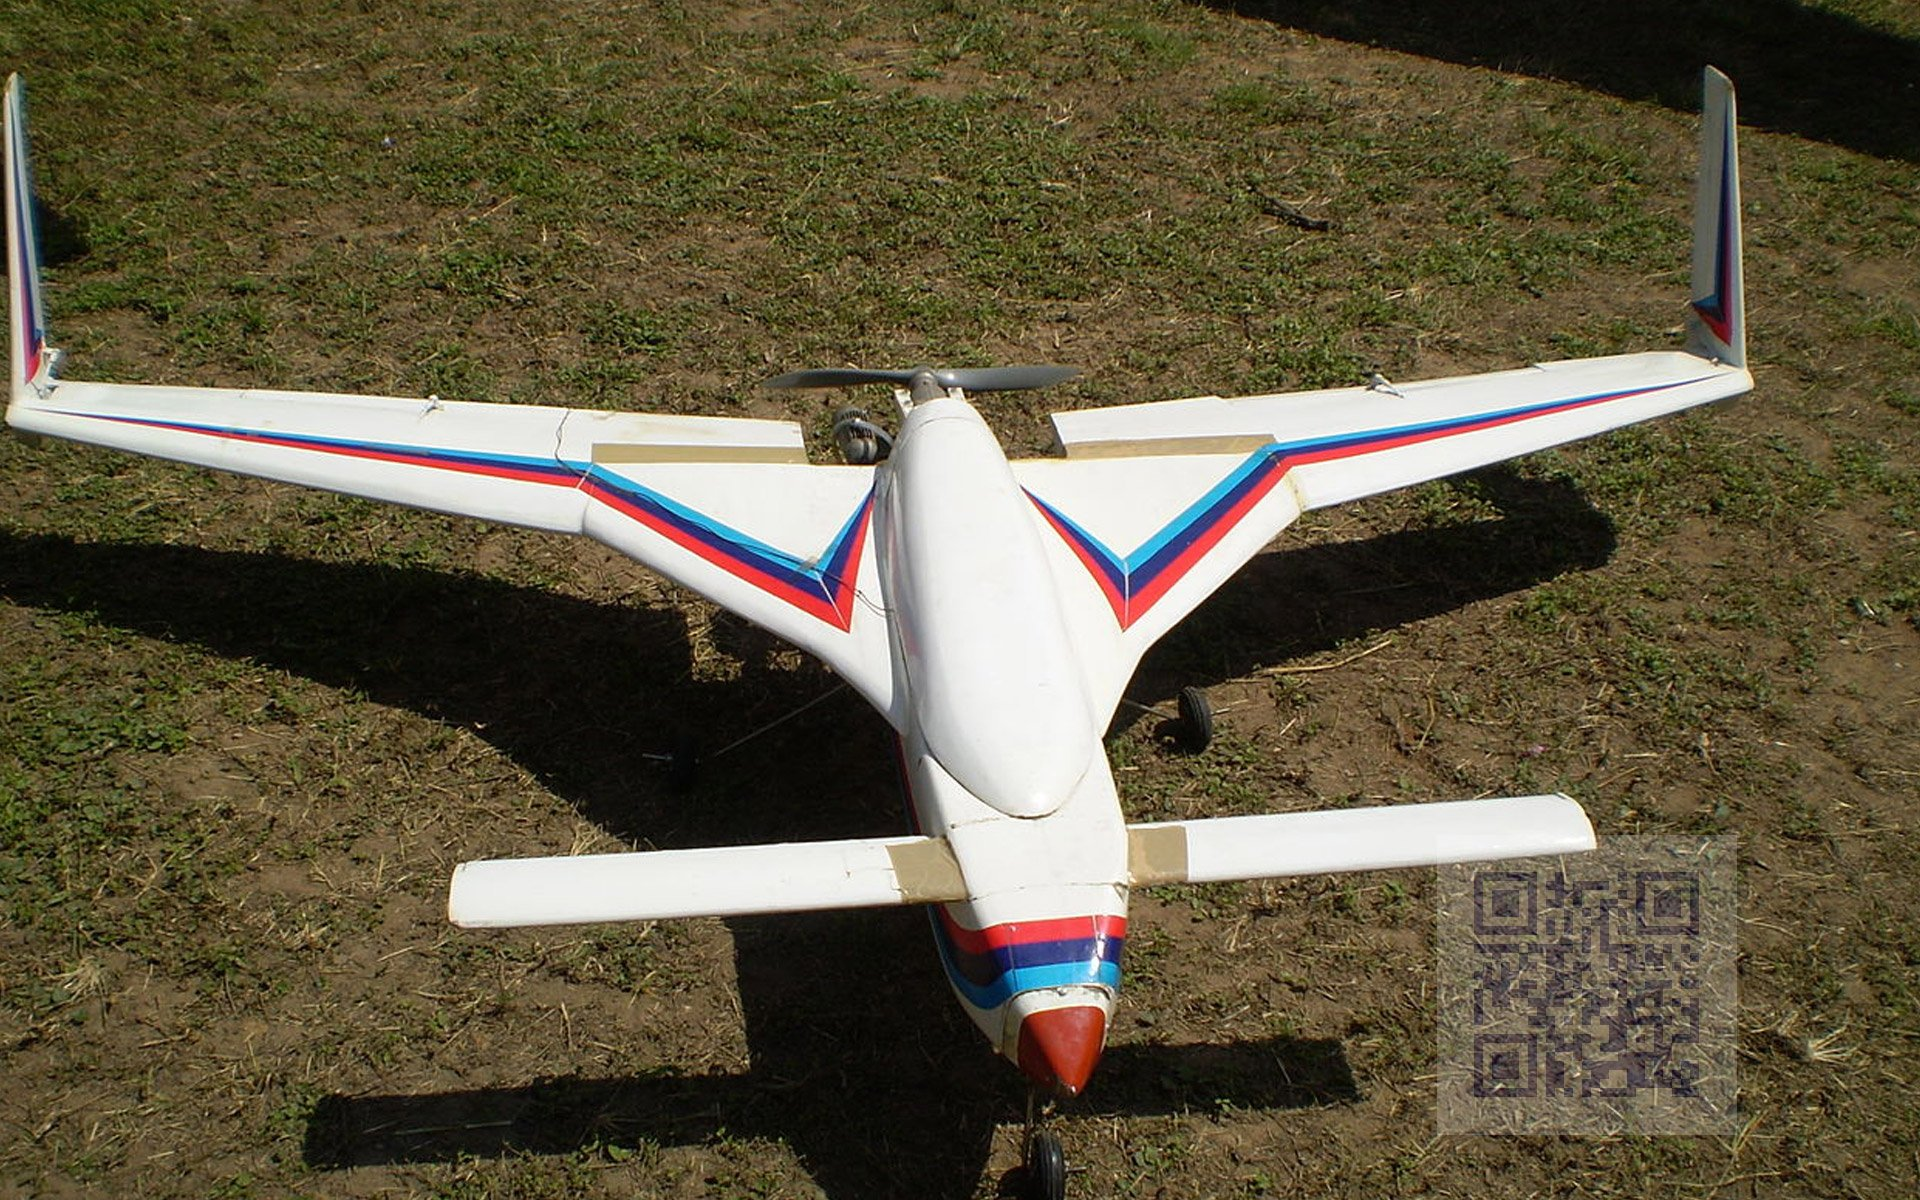 A scaled down model of the Rustom-1 MALE UAV